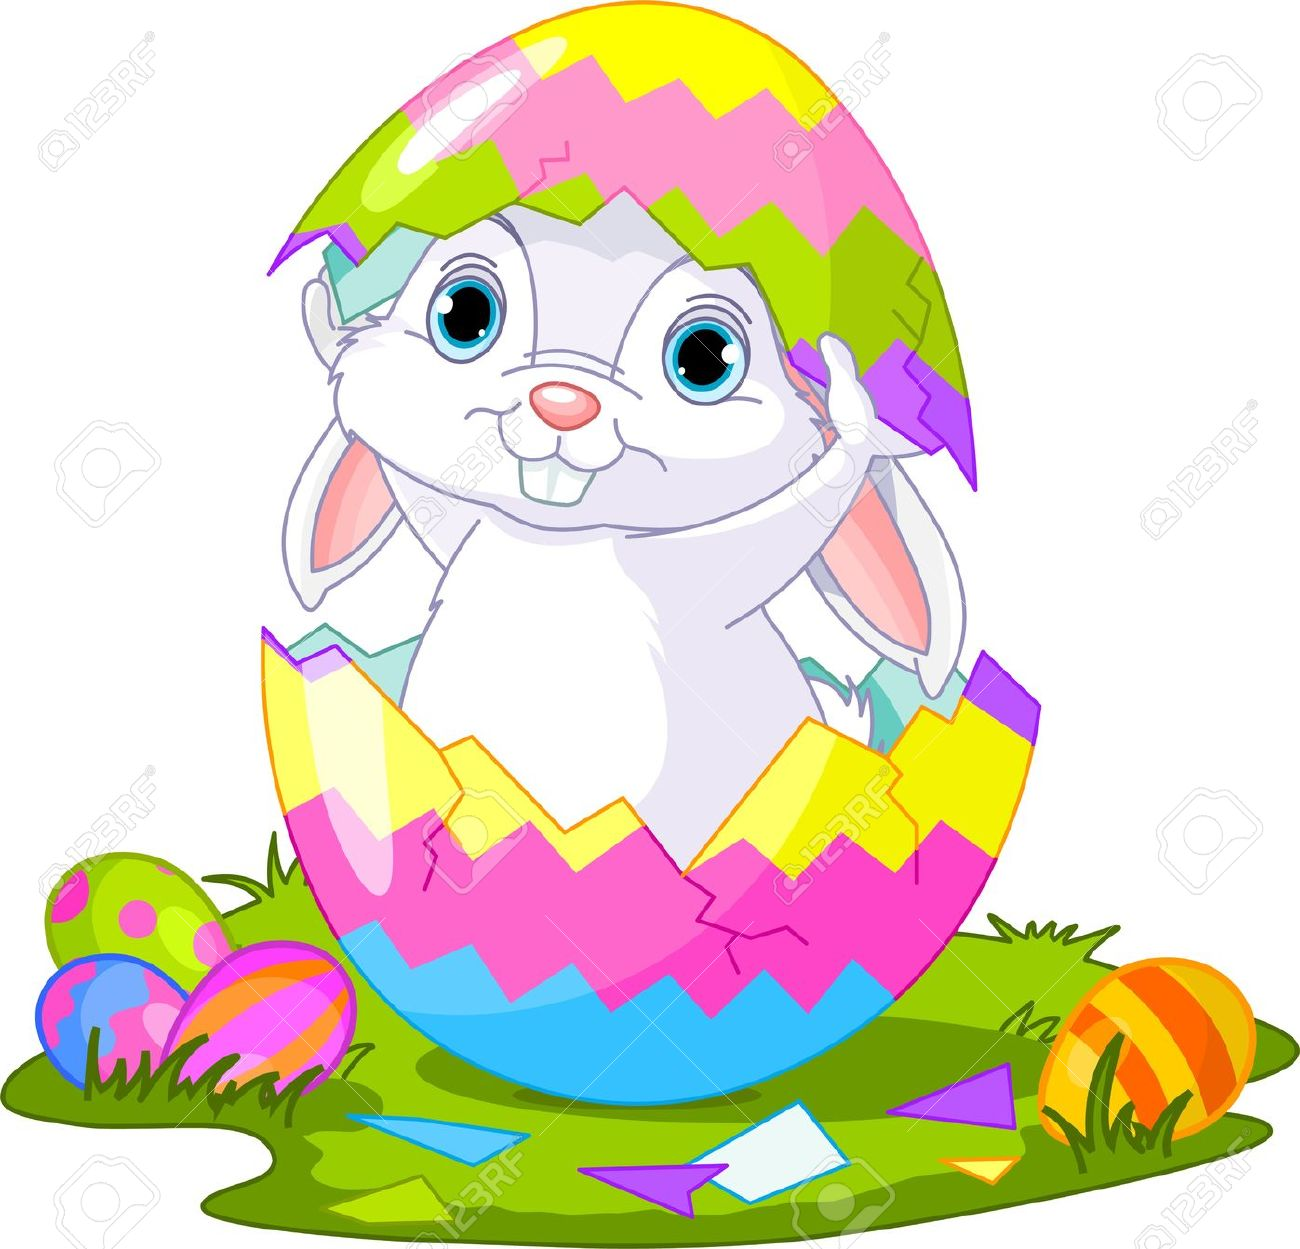 Easter bunny clipart free download 3 » Clipart Station.